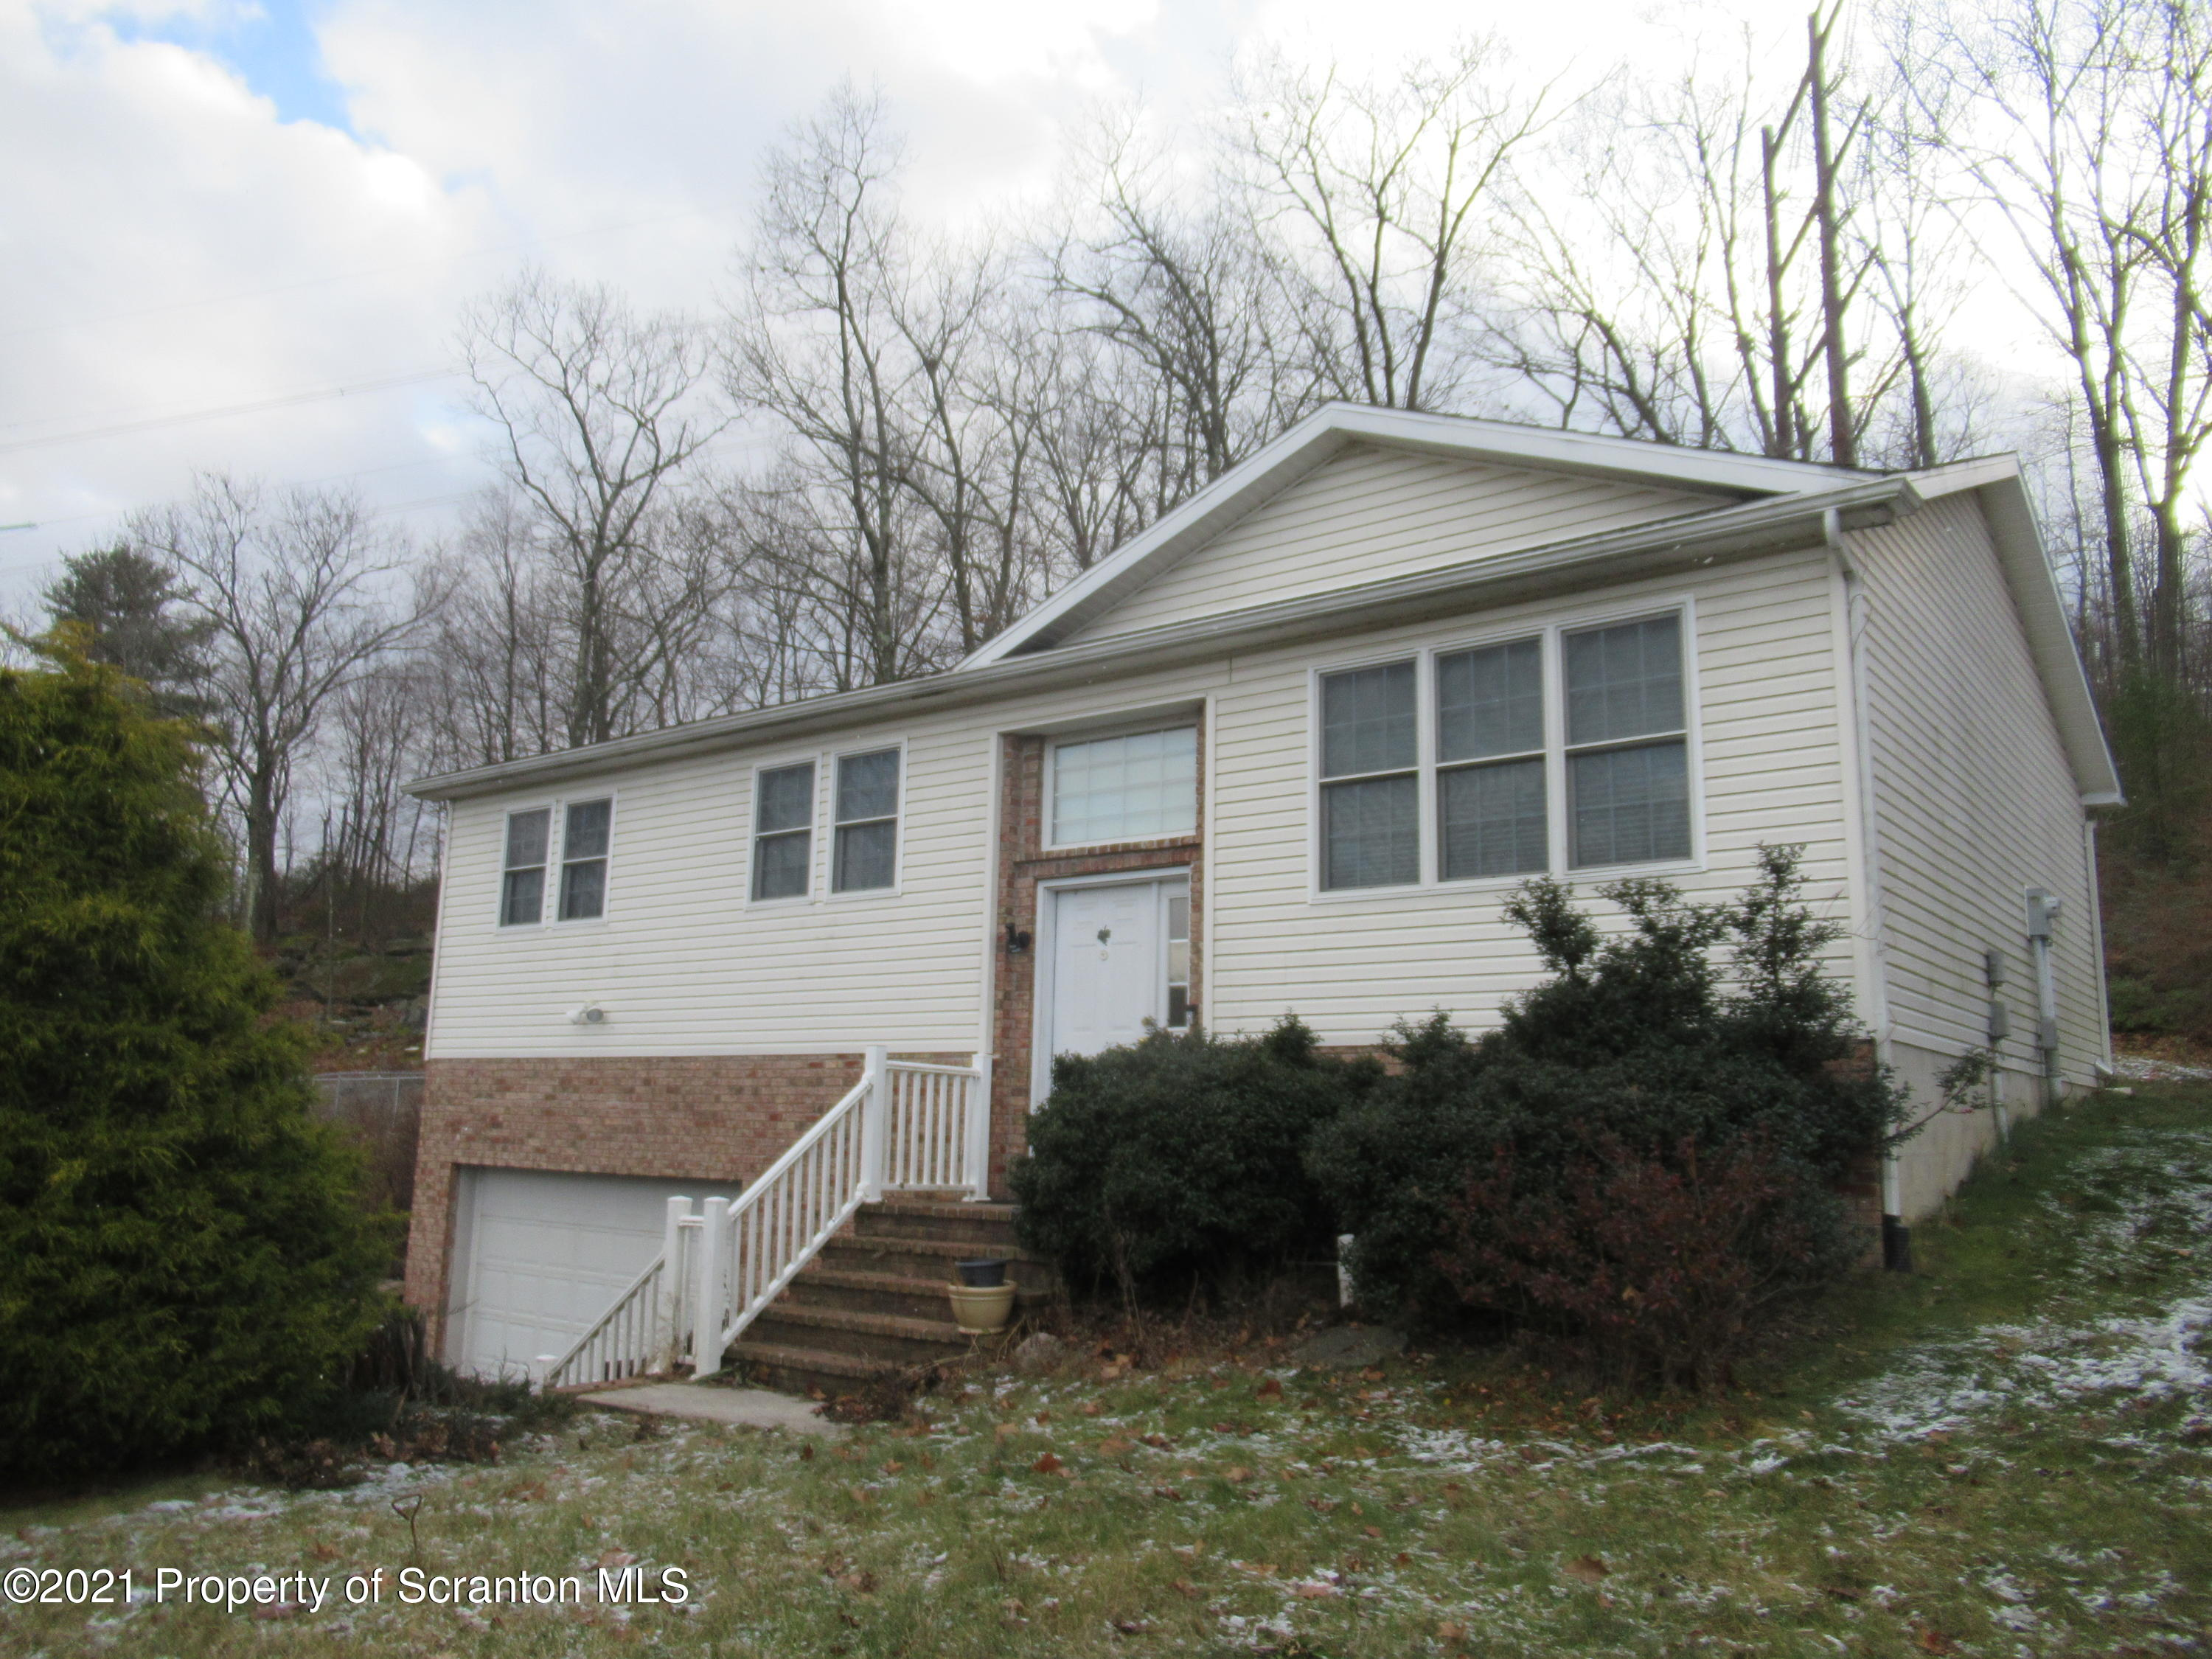 795 Main St, Archbald, Pennsylvania 18403, 3 Bedrooms Bedrooms, 7 Rooms Rooms,3 BathroomsBathrooms,Single Family,For Sale,Main,21-1204